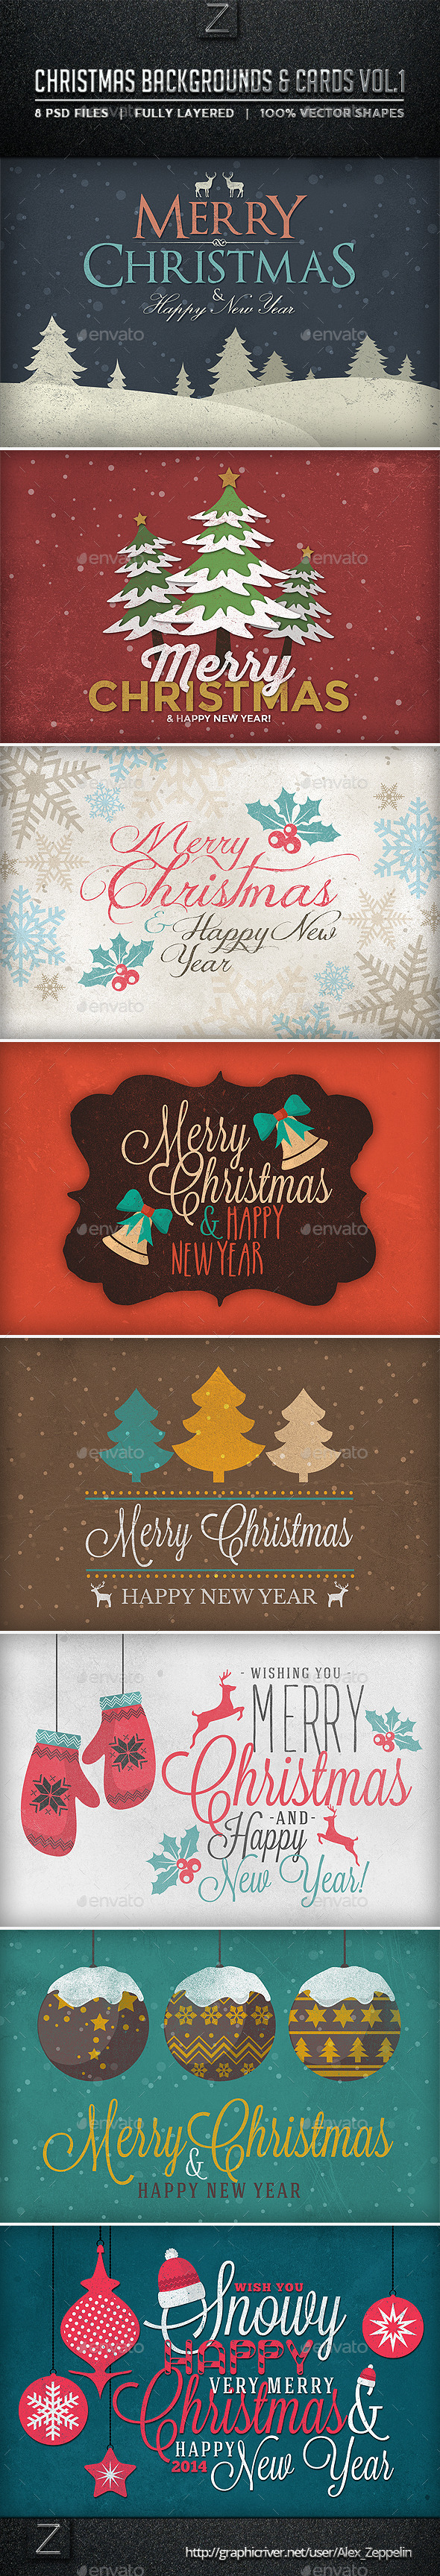 GraphicRiver Christmas Backgrounds and Cards Vol.1 9433200